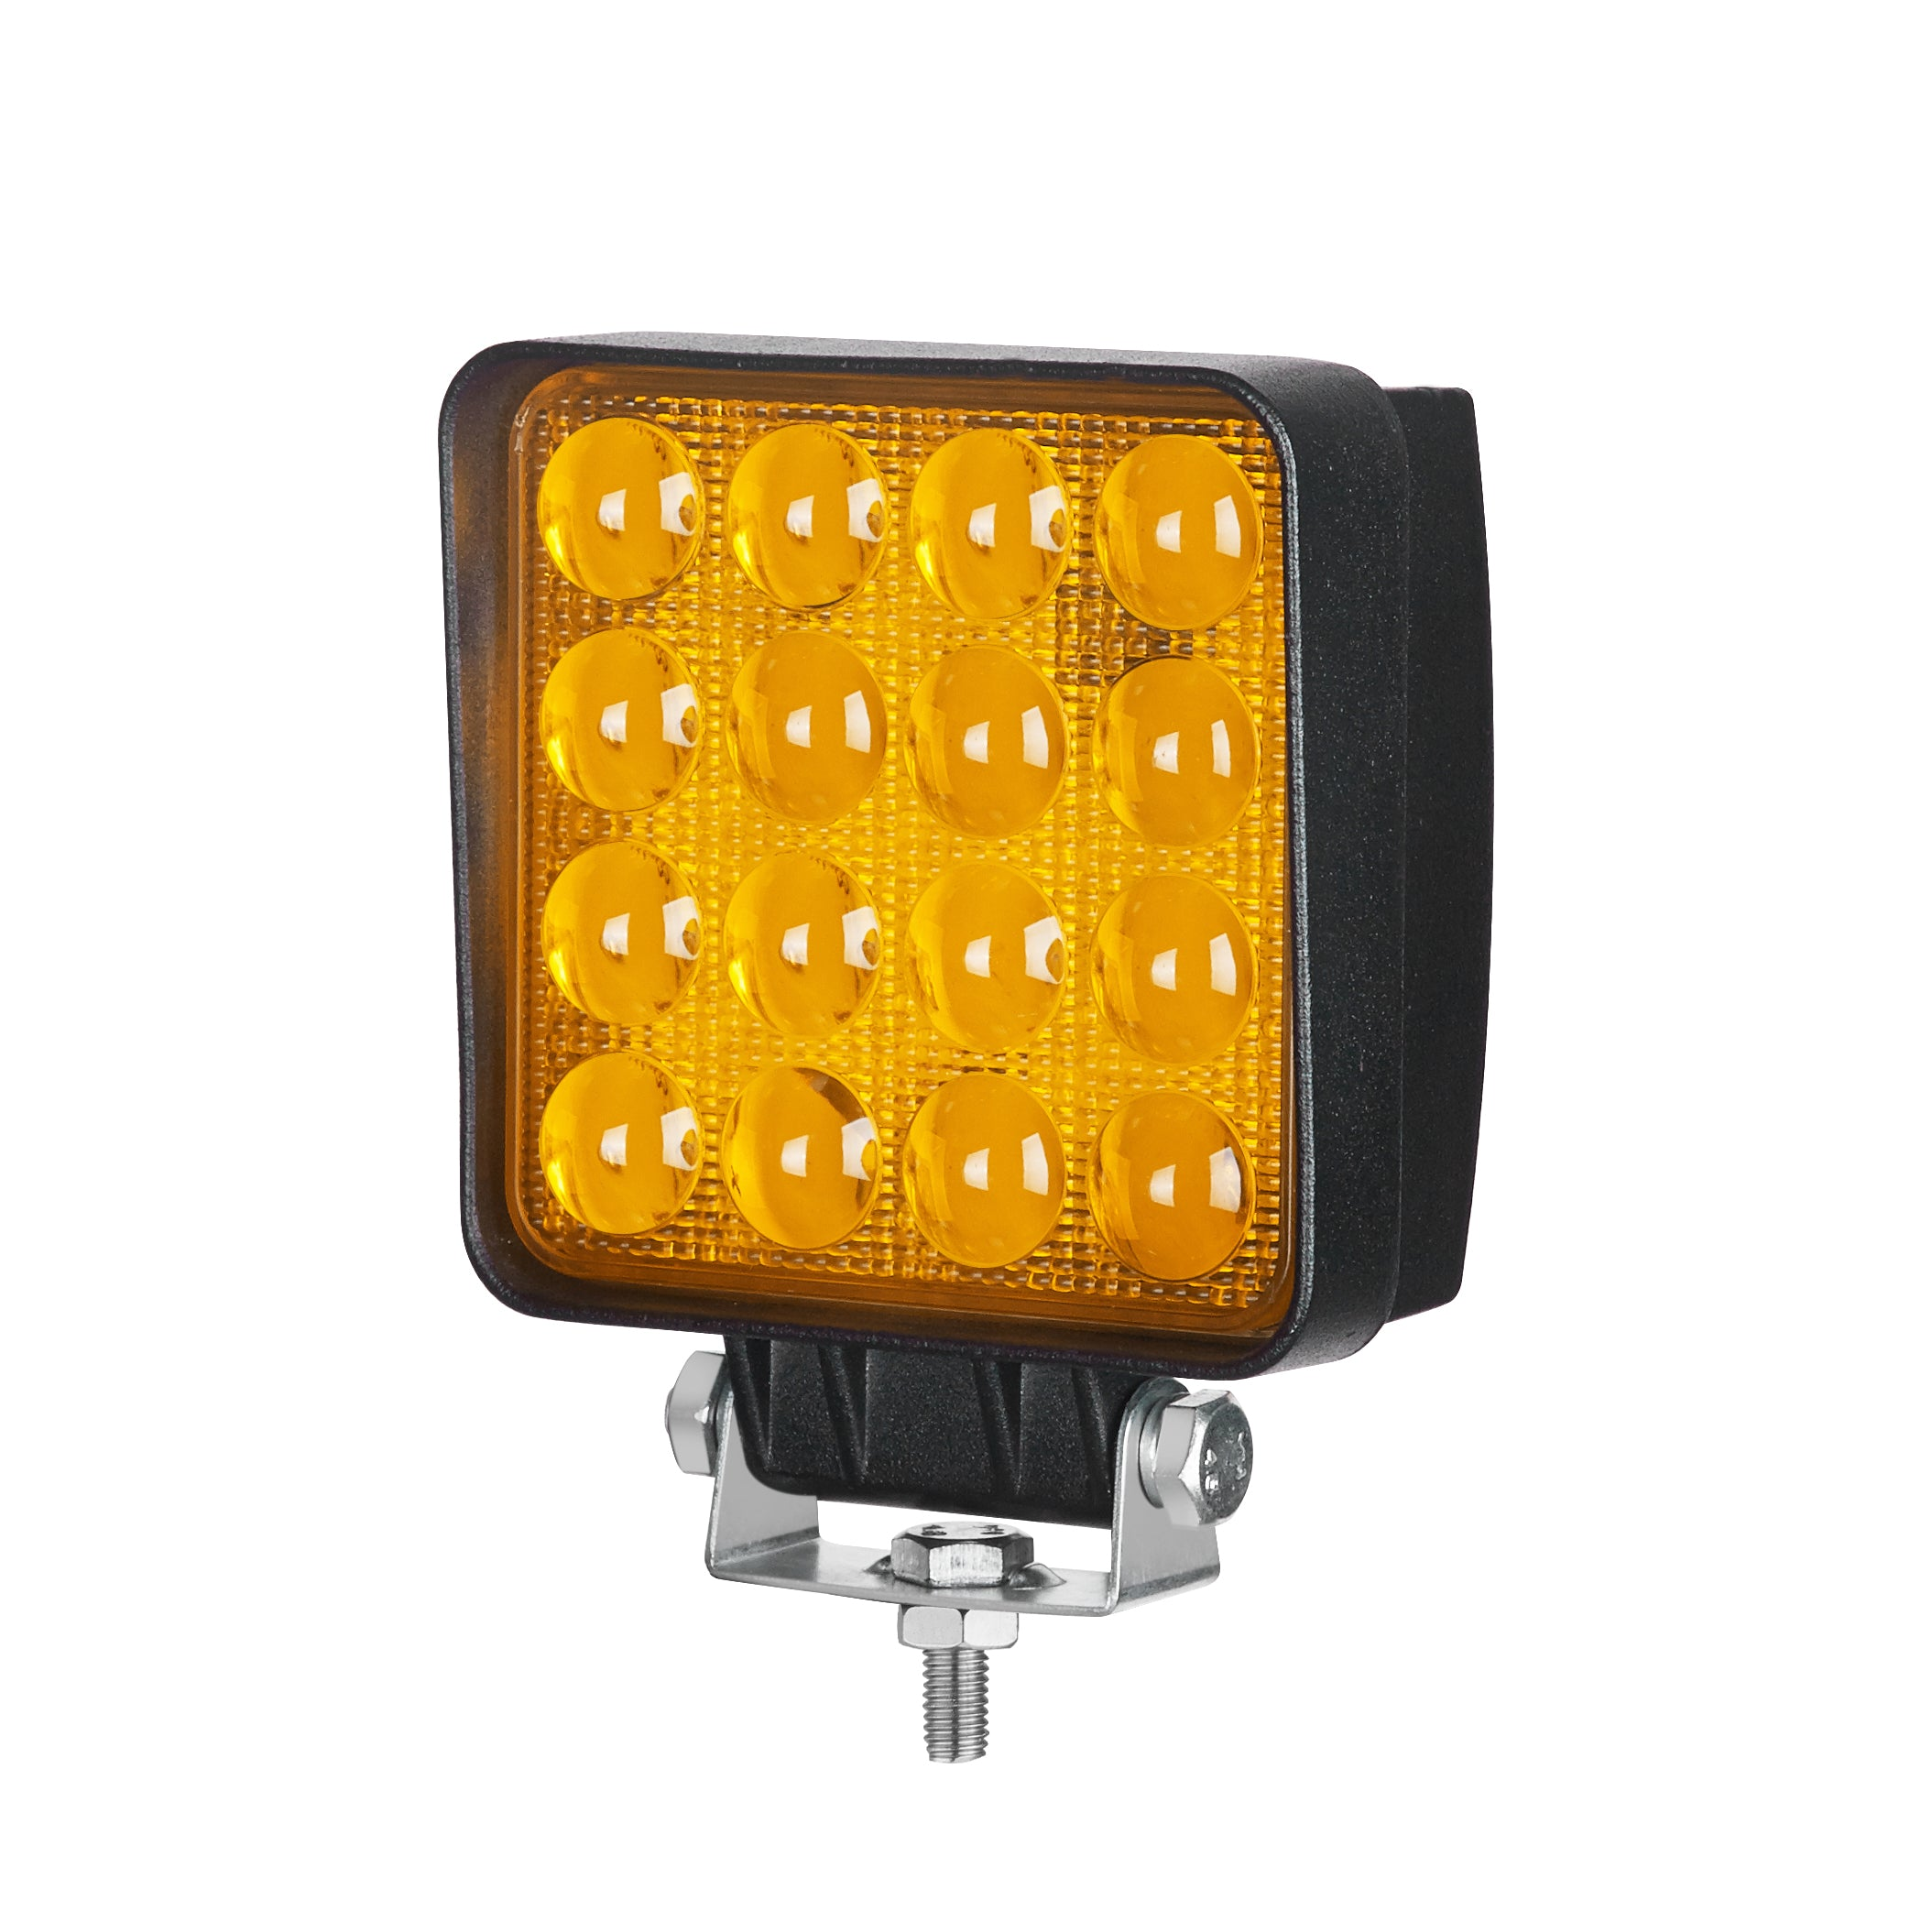 "AMBER SERIES LED WORK LIGHT: 4"" SQUARE - FLOOD - AMBER"